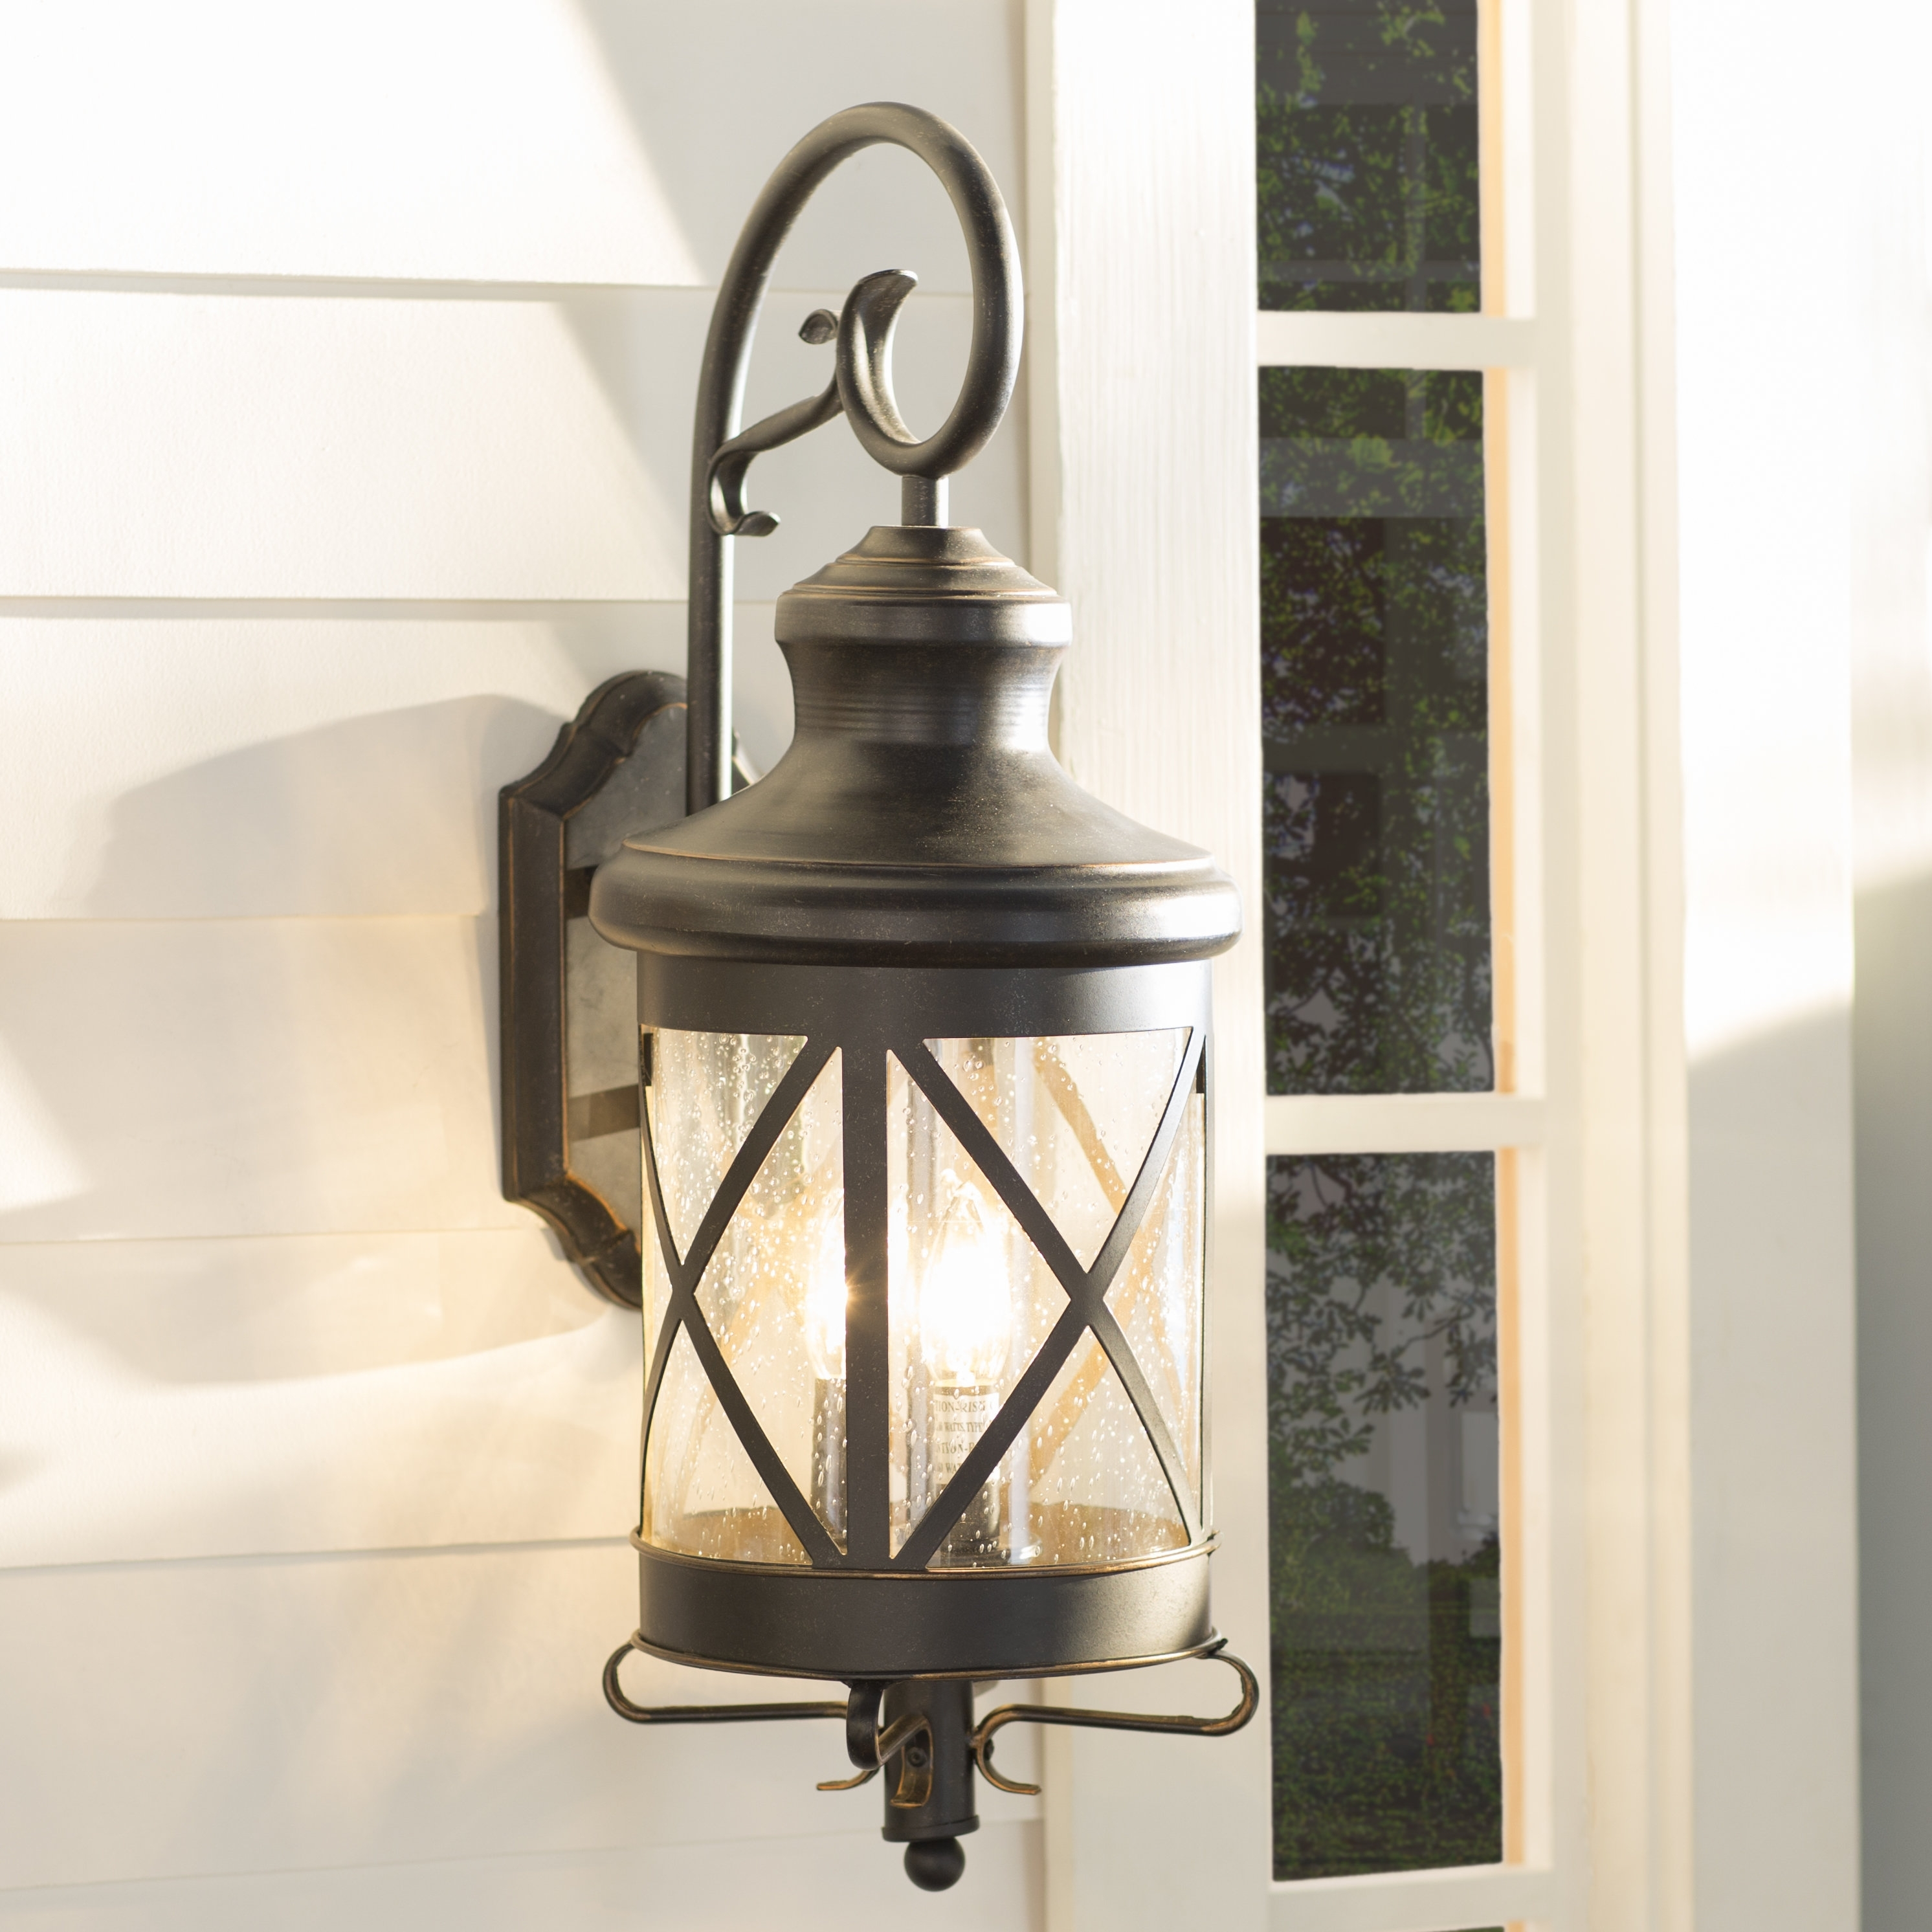 Three Posts Fairbury Outdoor Wall Lantern & Reviews | Wayfair for Outdoor Wall Lanterns (Image 18 of 20)